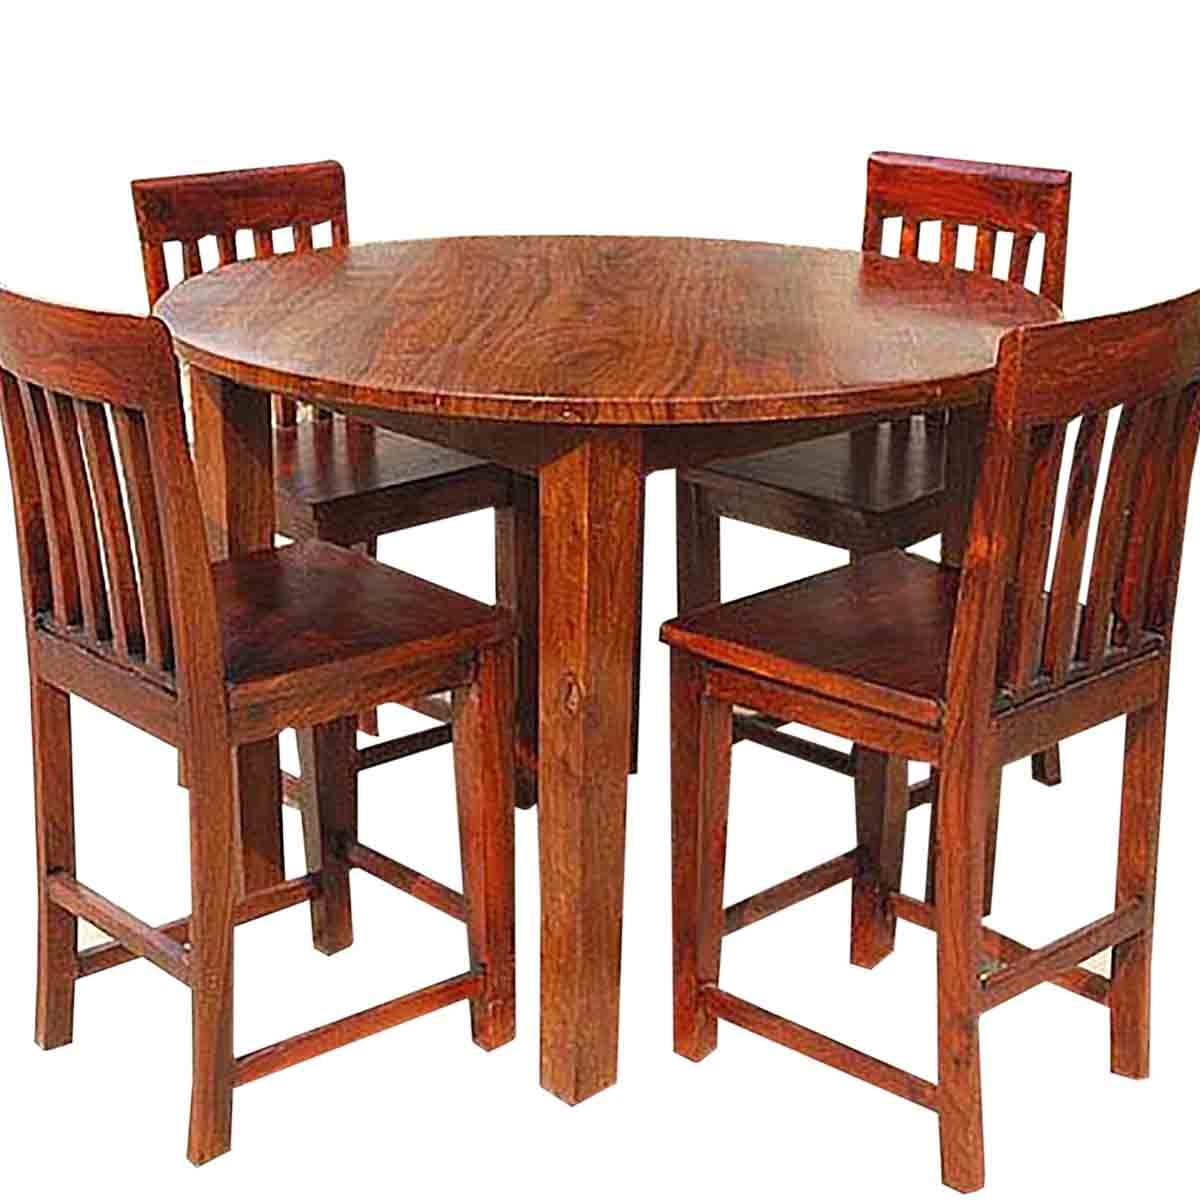 Bar For Dining Room: Sierra Nevada 5 Pc Pub Table Bar Dining Room Table And